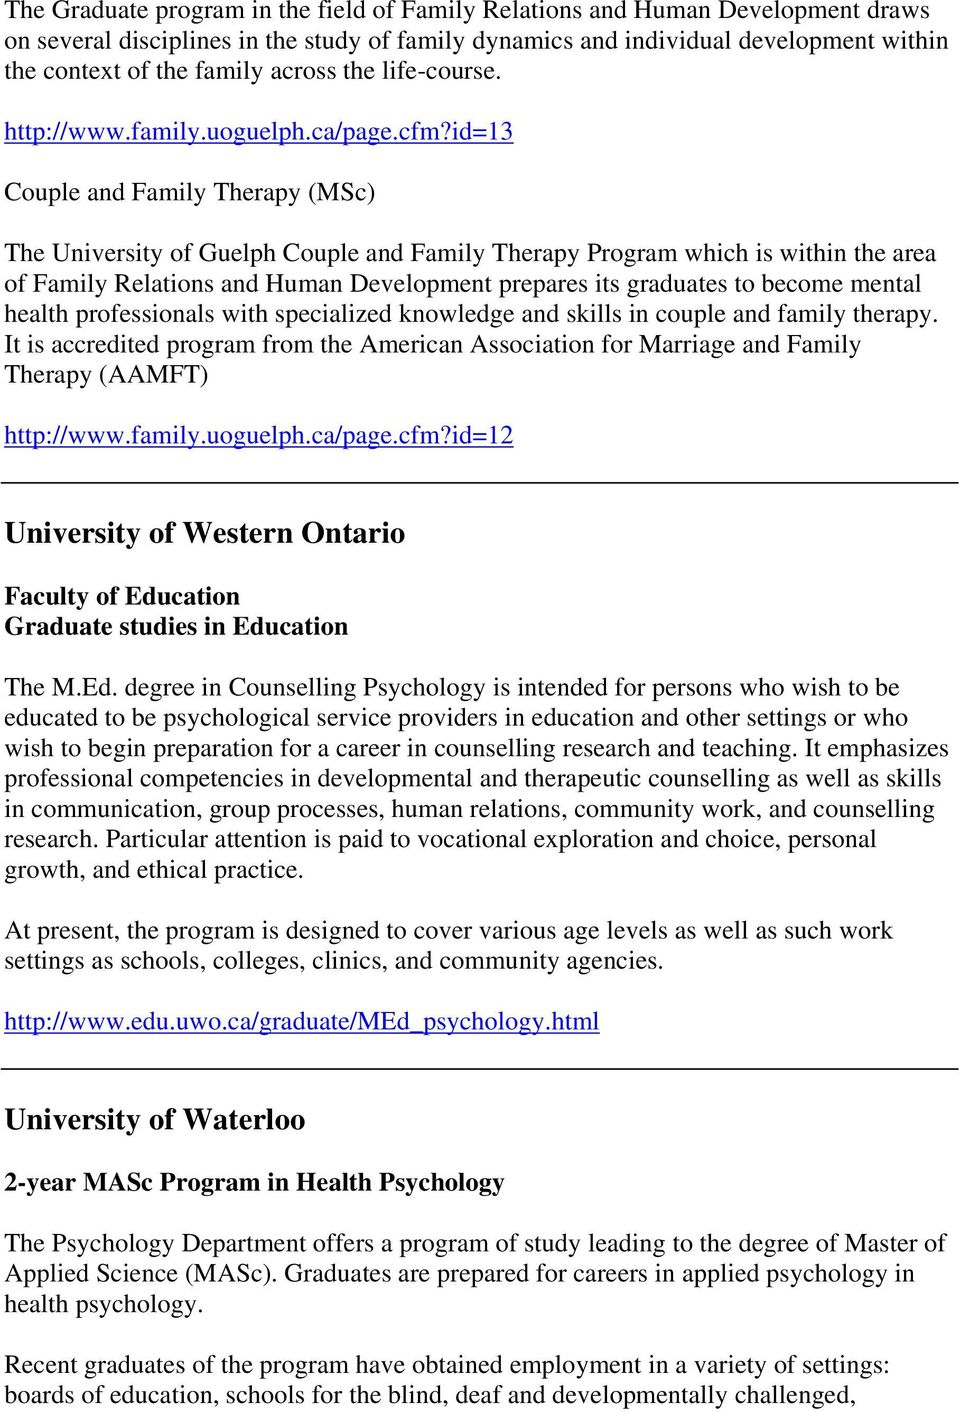 id=13 Couple and Family Therapy (MSc) The University of Guelph Couple and Family Therapy Program which is within the area of Family Relations and Human Development prepares its graduates to become